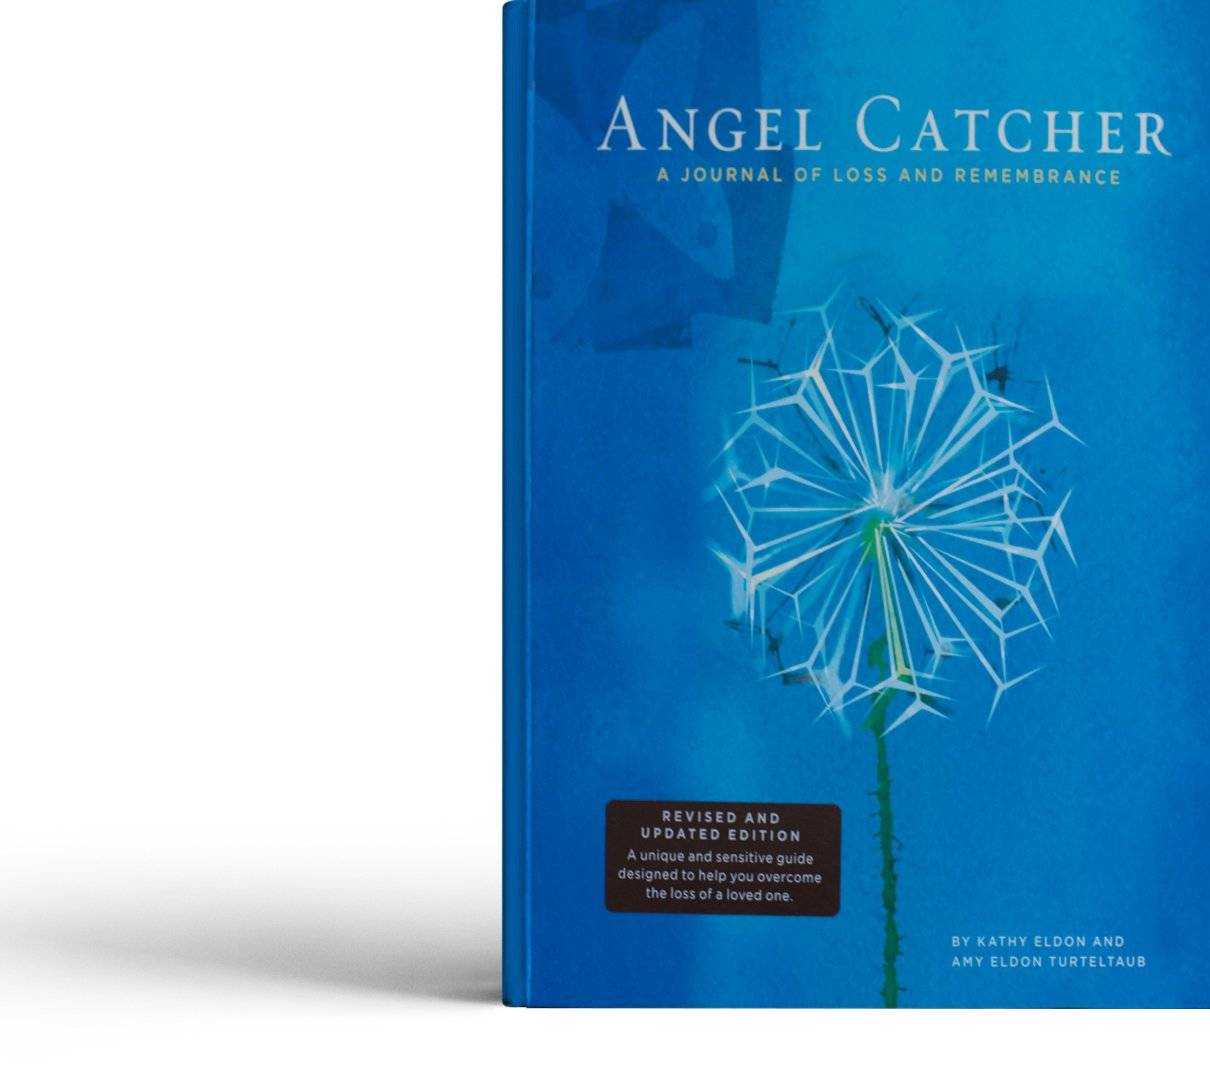 Angel Catcher - Kathy Eldon